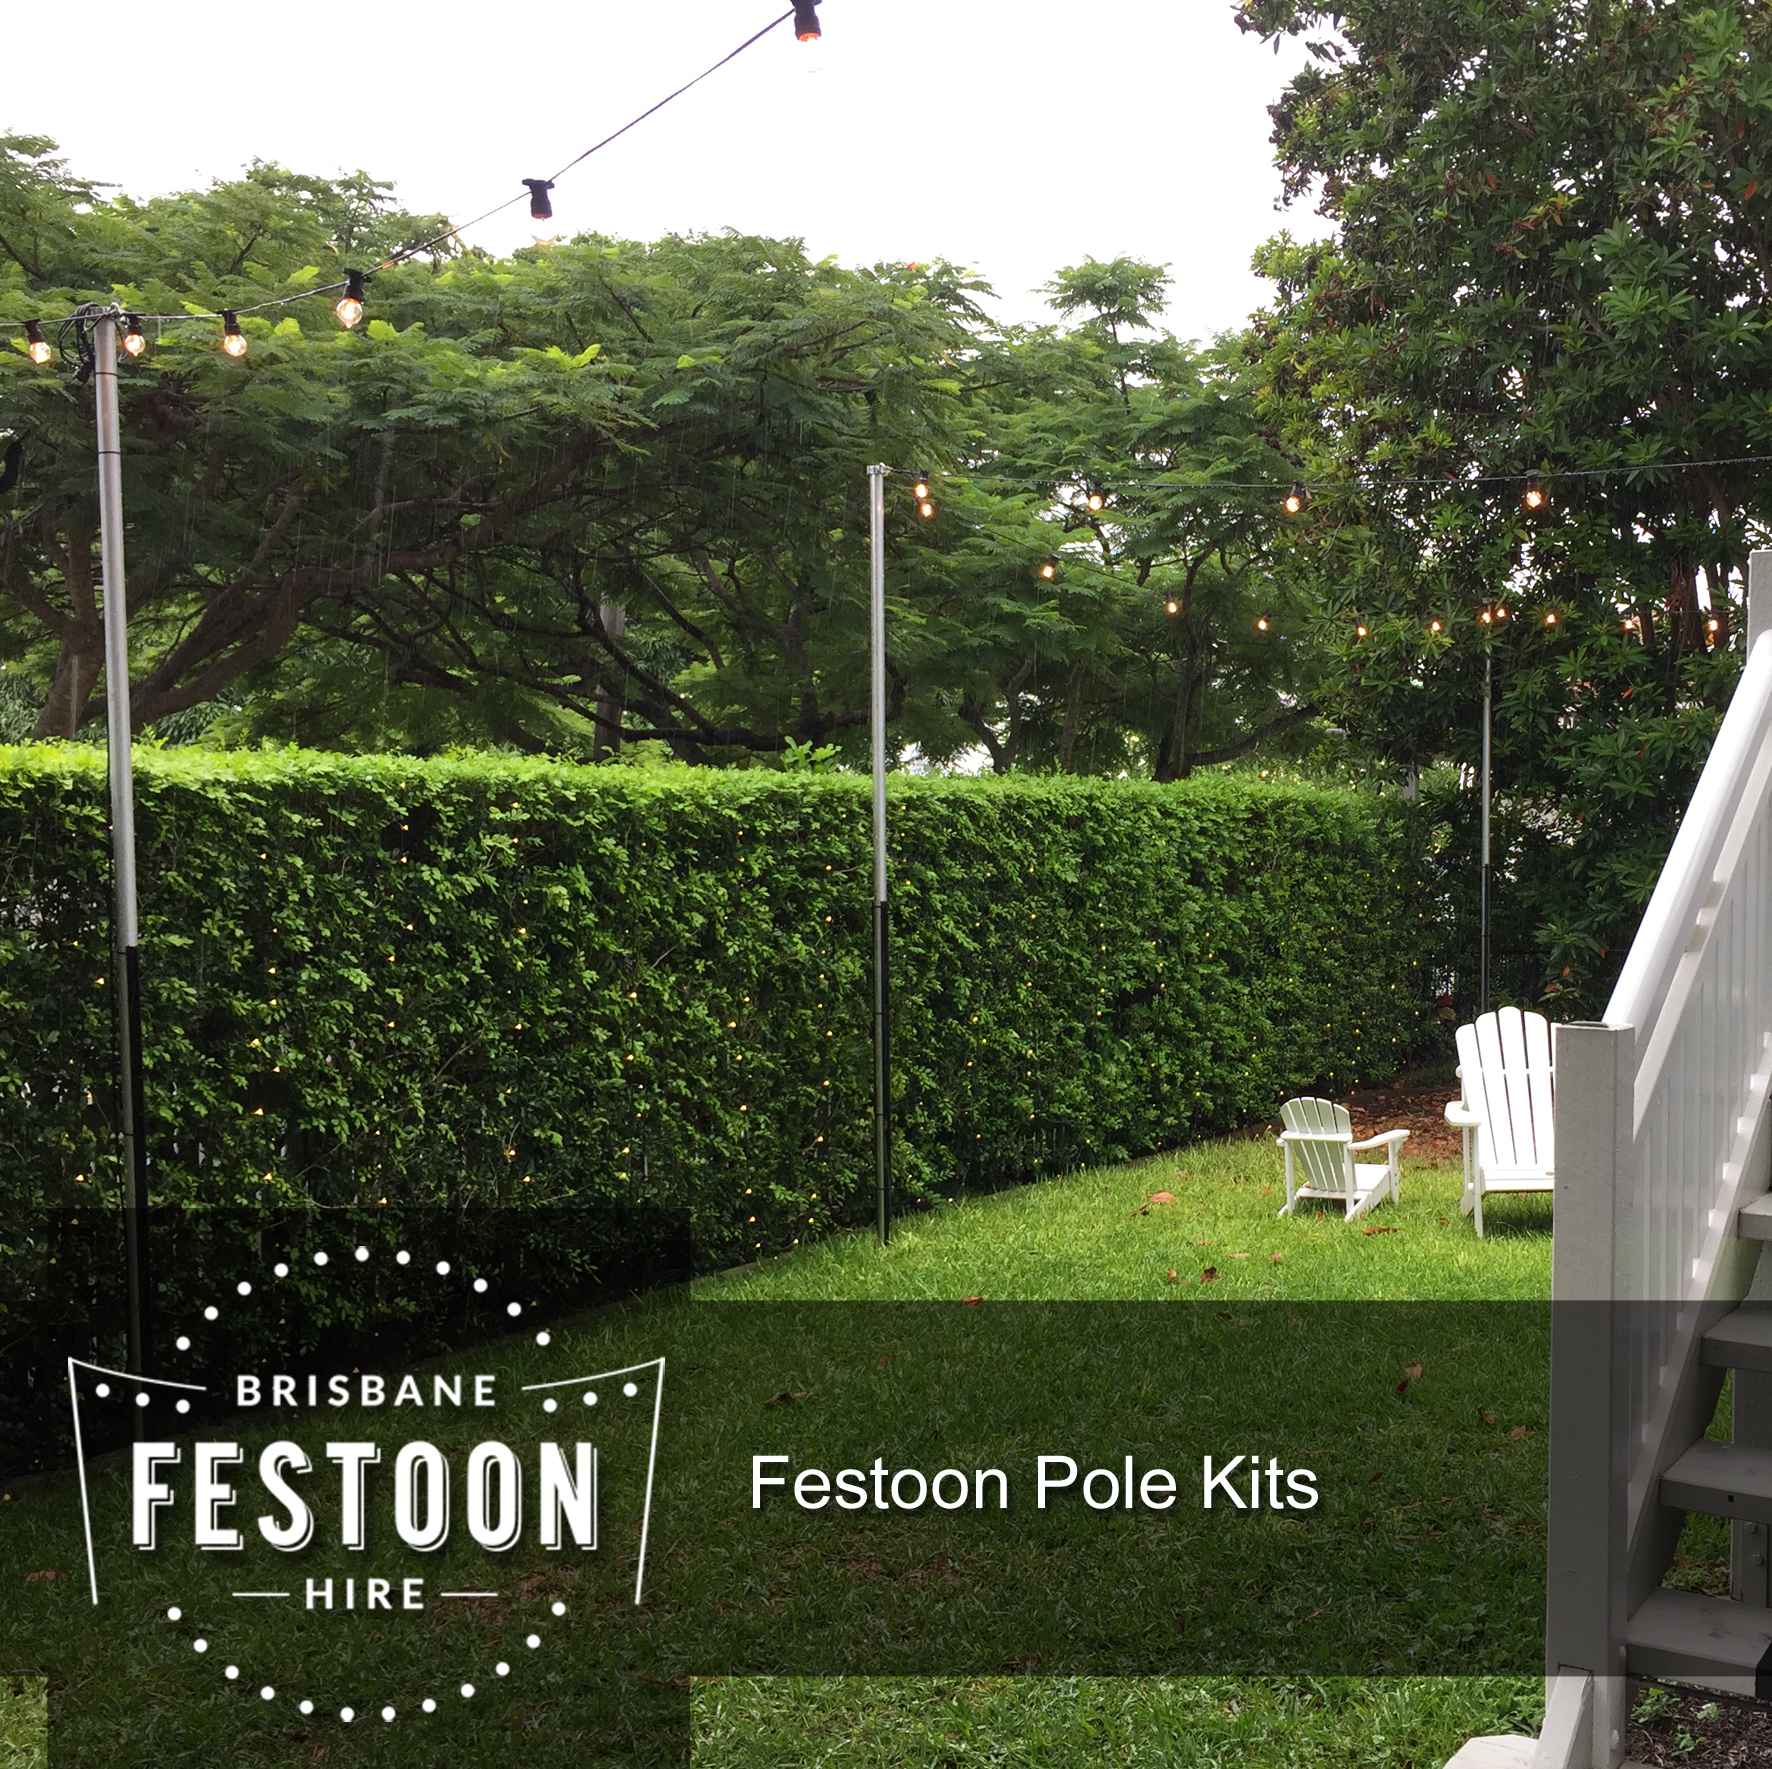 Brisbane Festoon Hire - Pole Kit 1.jpg